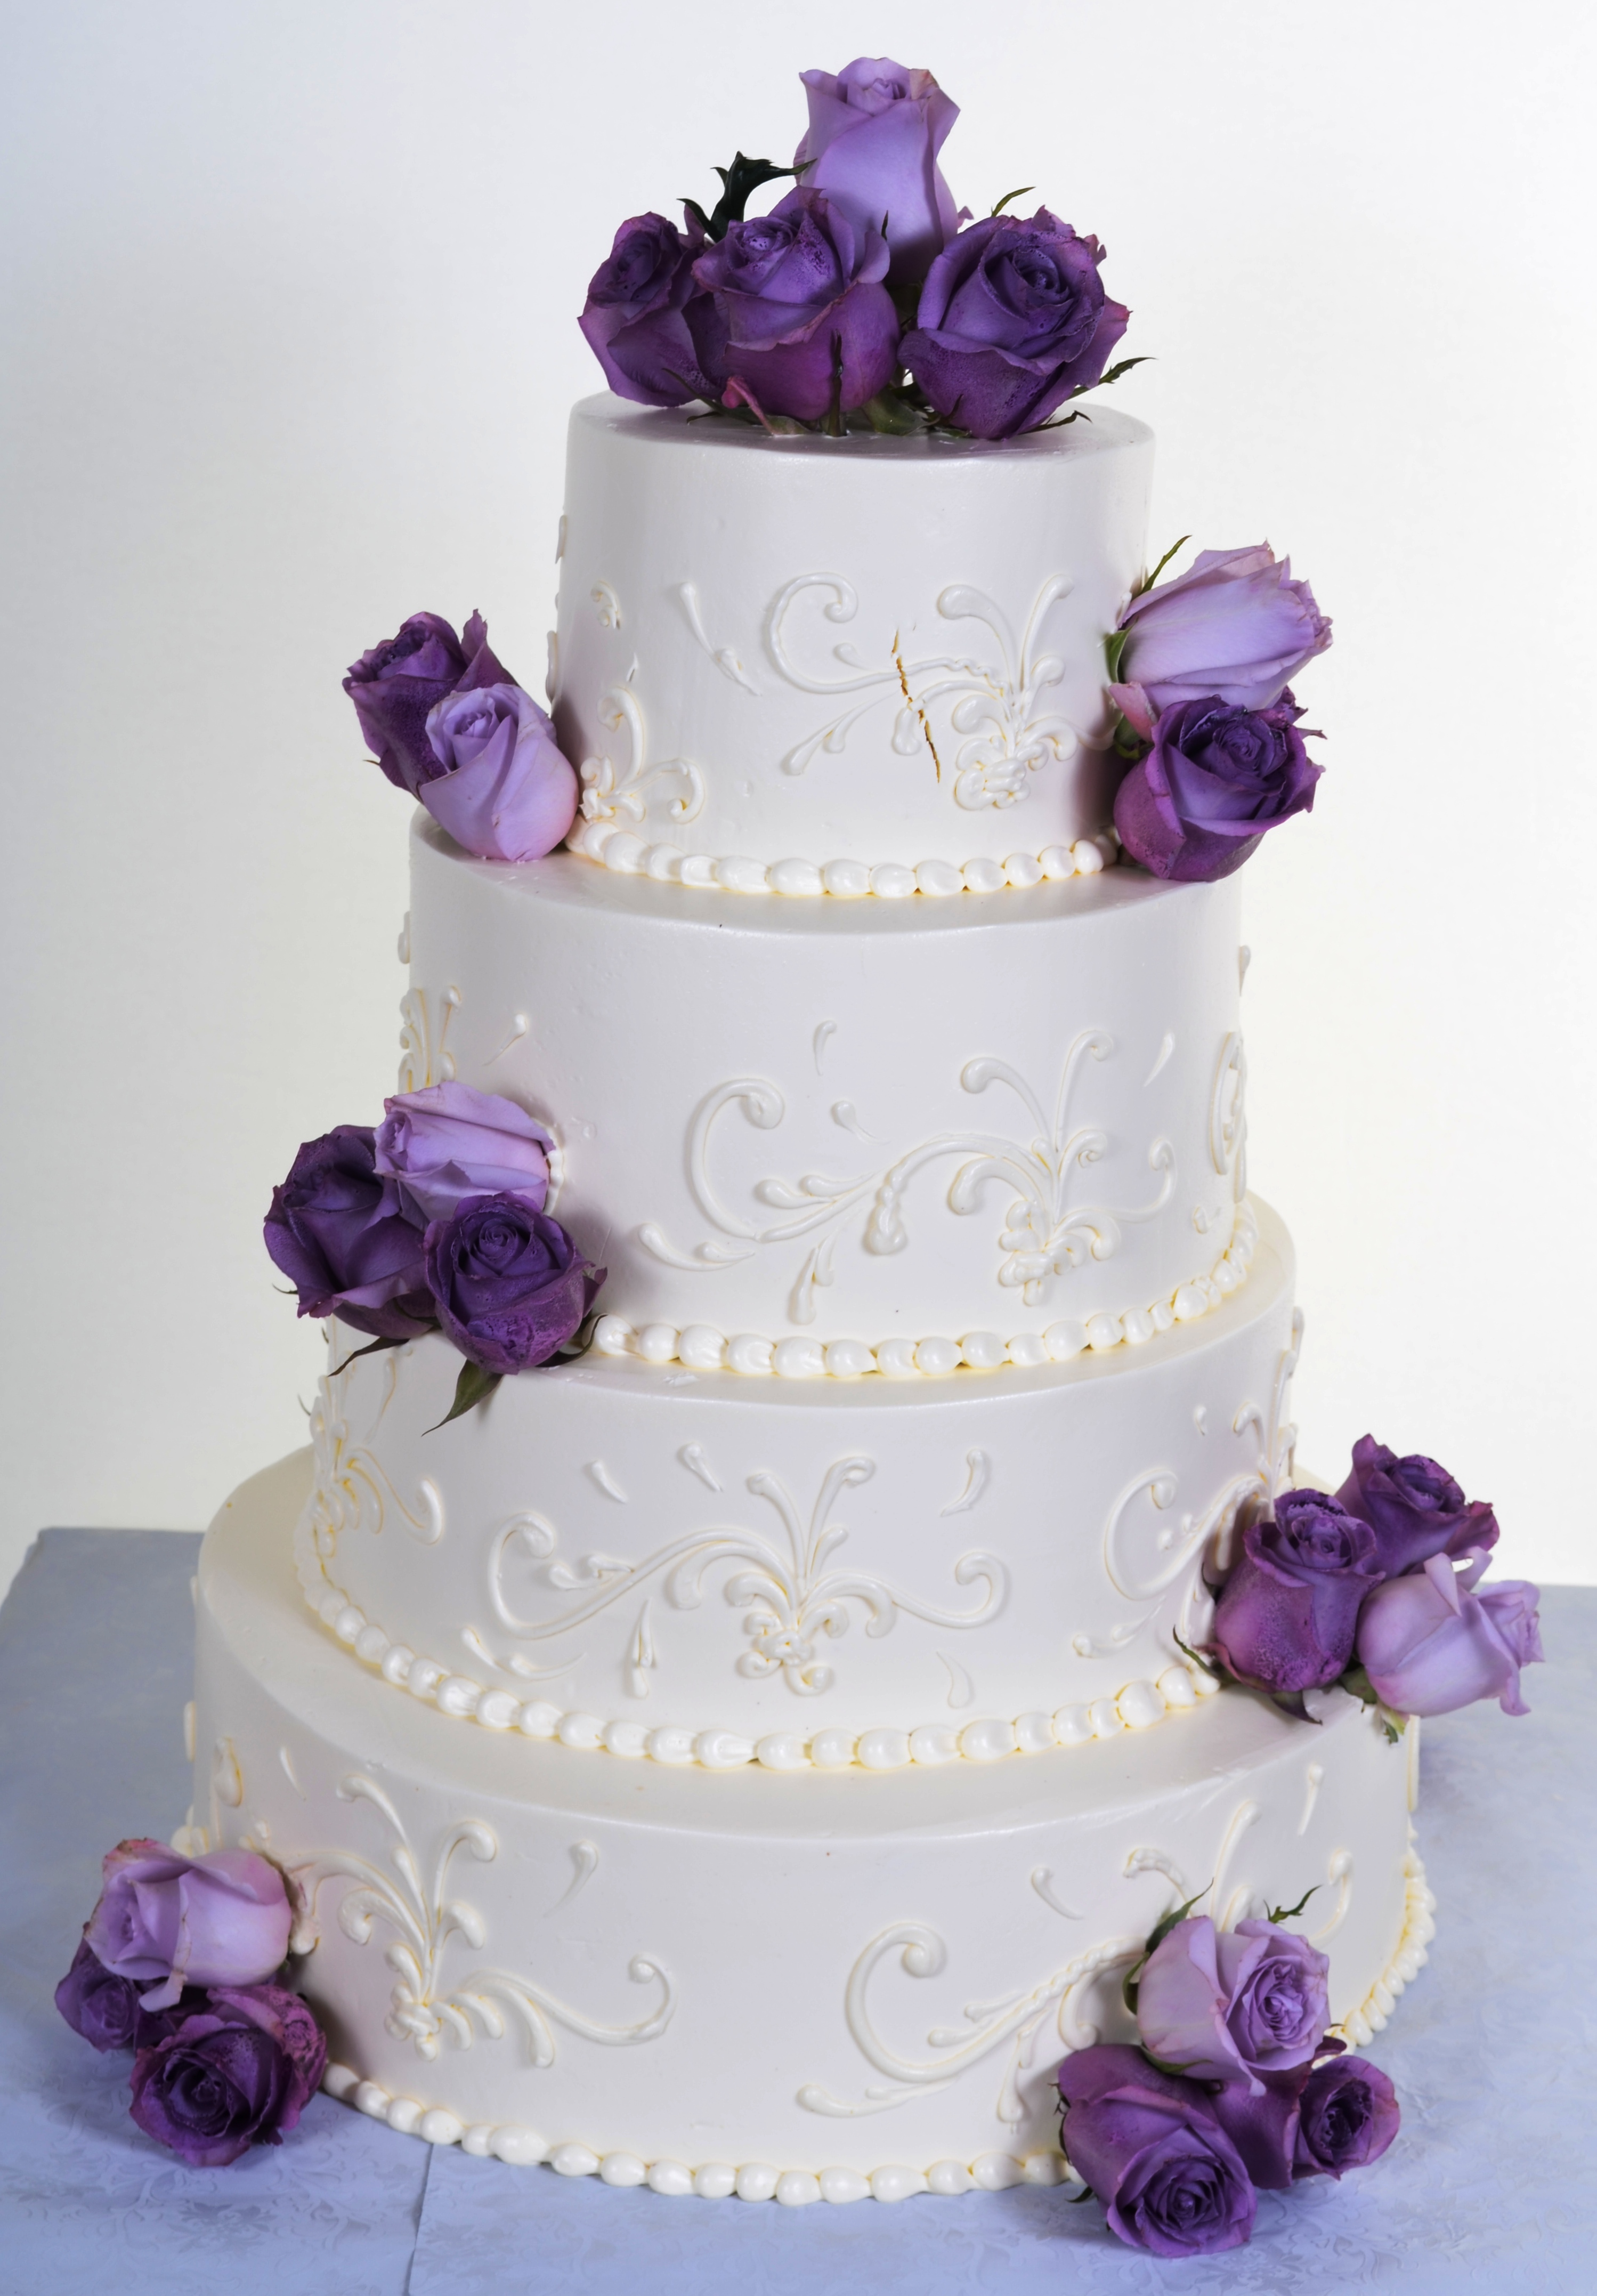 Pastry Palace Las Vegas Wedding Cake 813 - White on White with Color